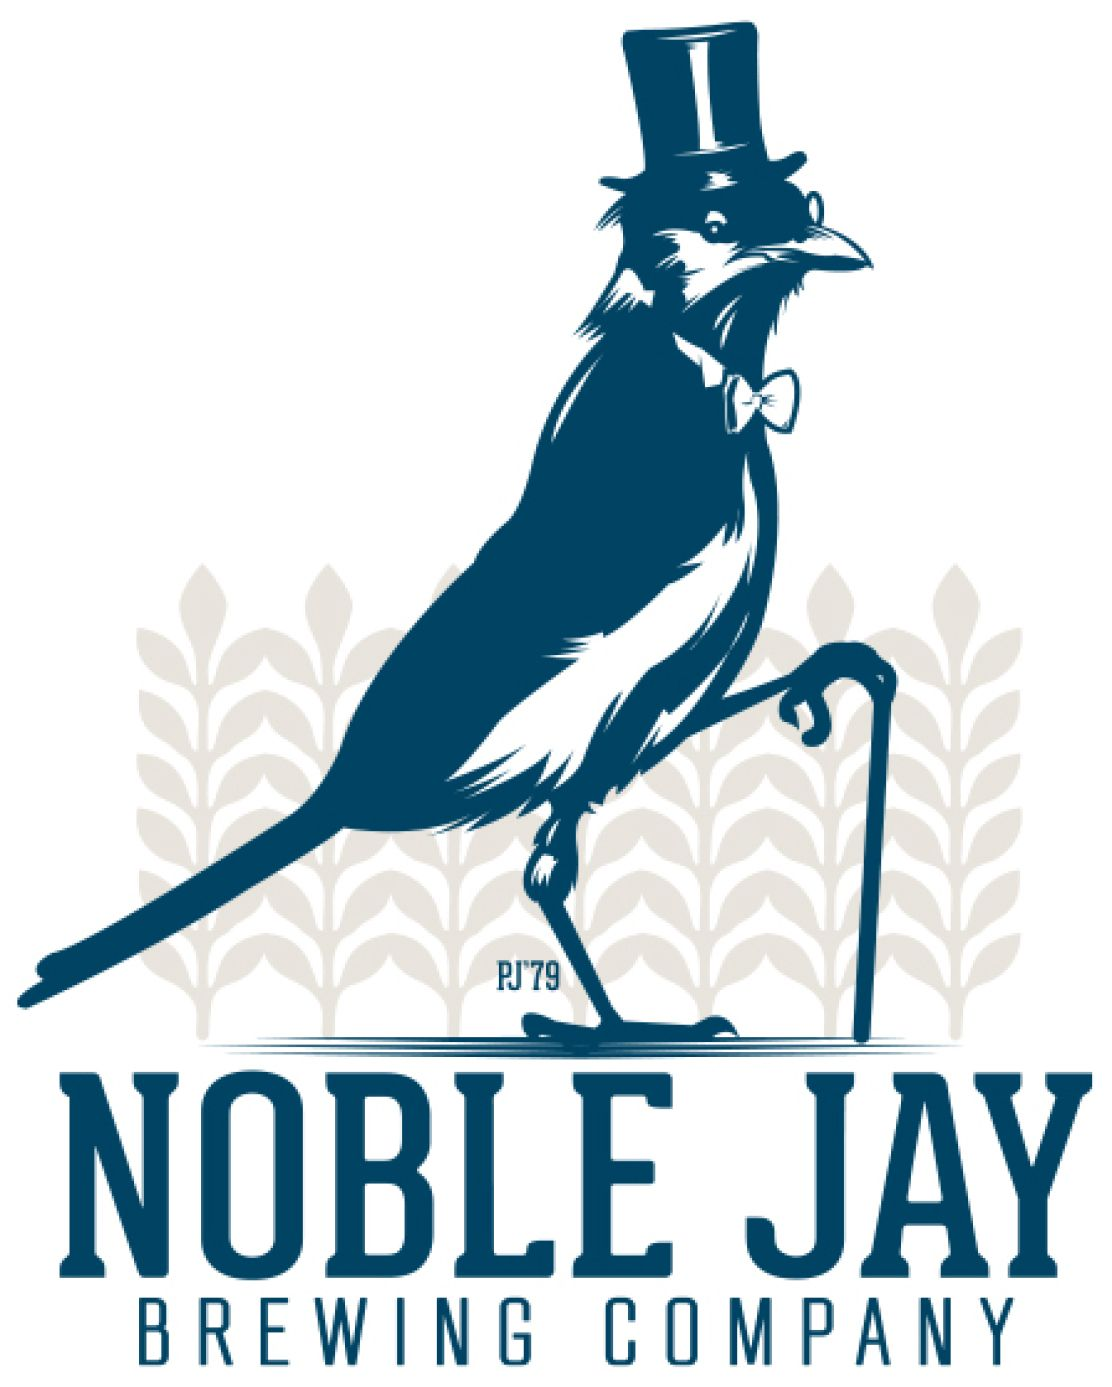 Hi! We are Noble Jay Brewing Company and we plan to open a brewery and taproom in the coming year in the quaint seaside New England town of East Lyme, CT.